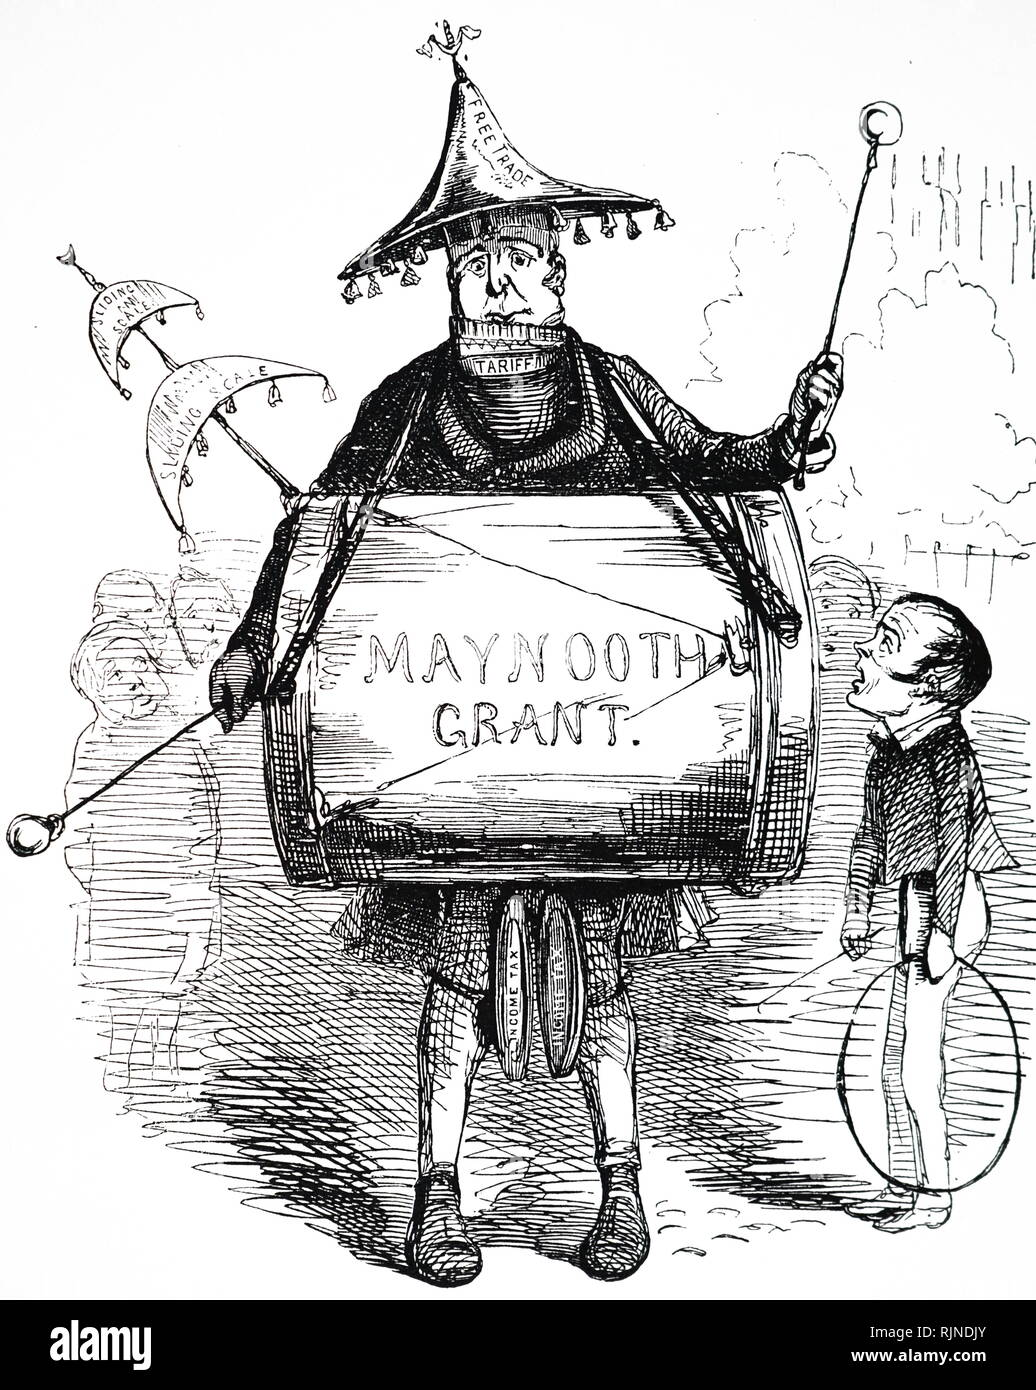 A cartoon commenting on the Maynooth Grant. Dated 19th century - Stock Image